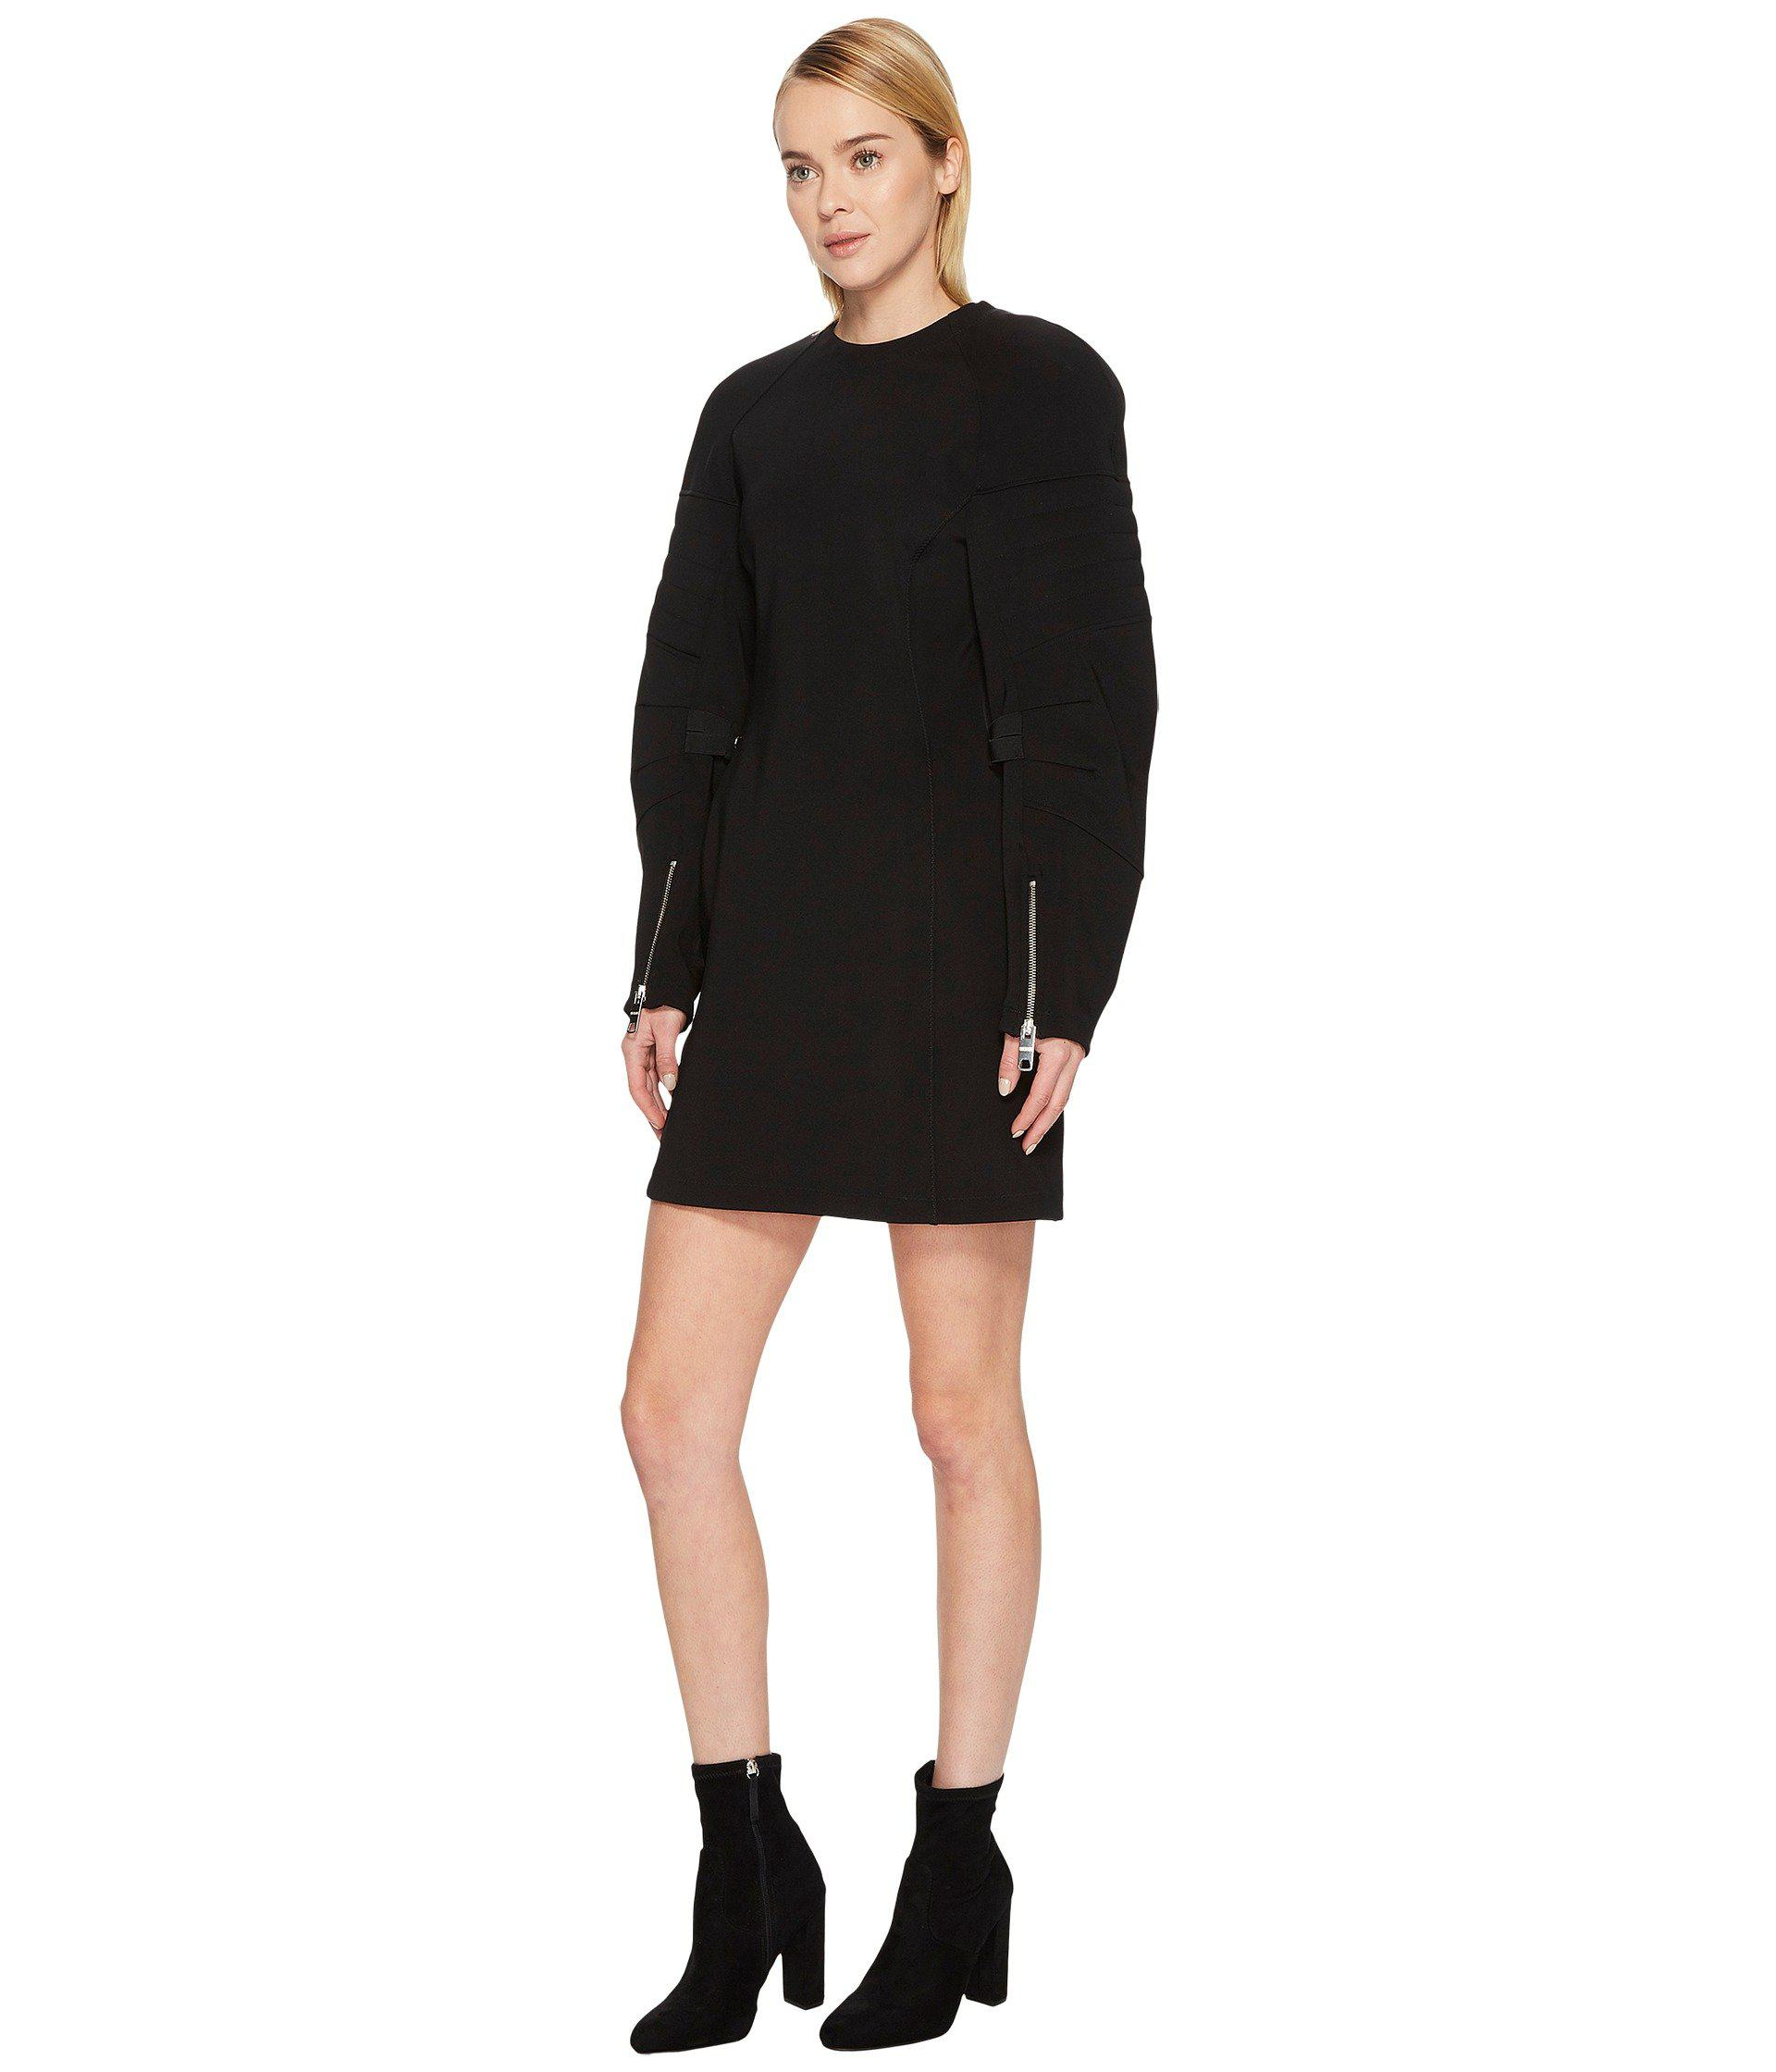 a819f74b62f5 Lyst - Versus Abito Donna Jersey in Black - Save 65%